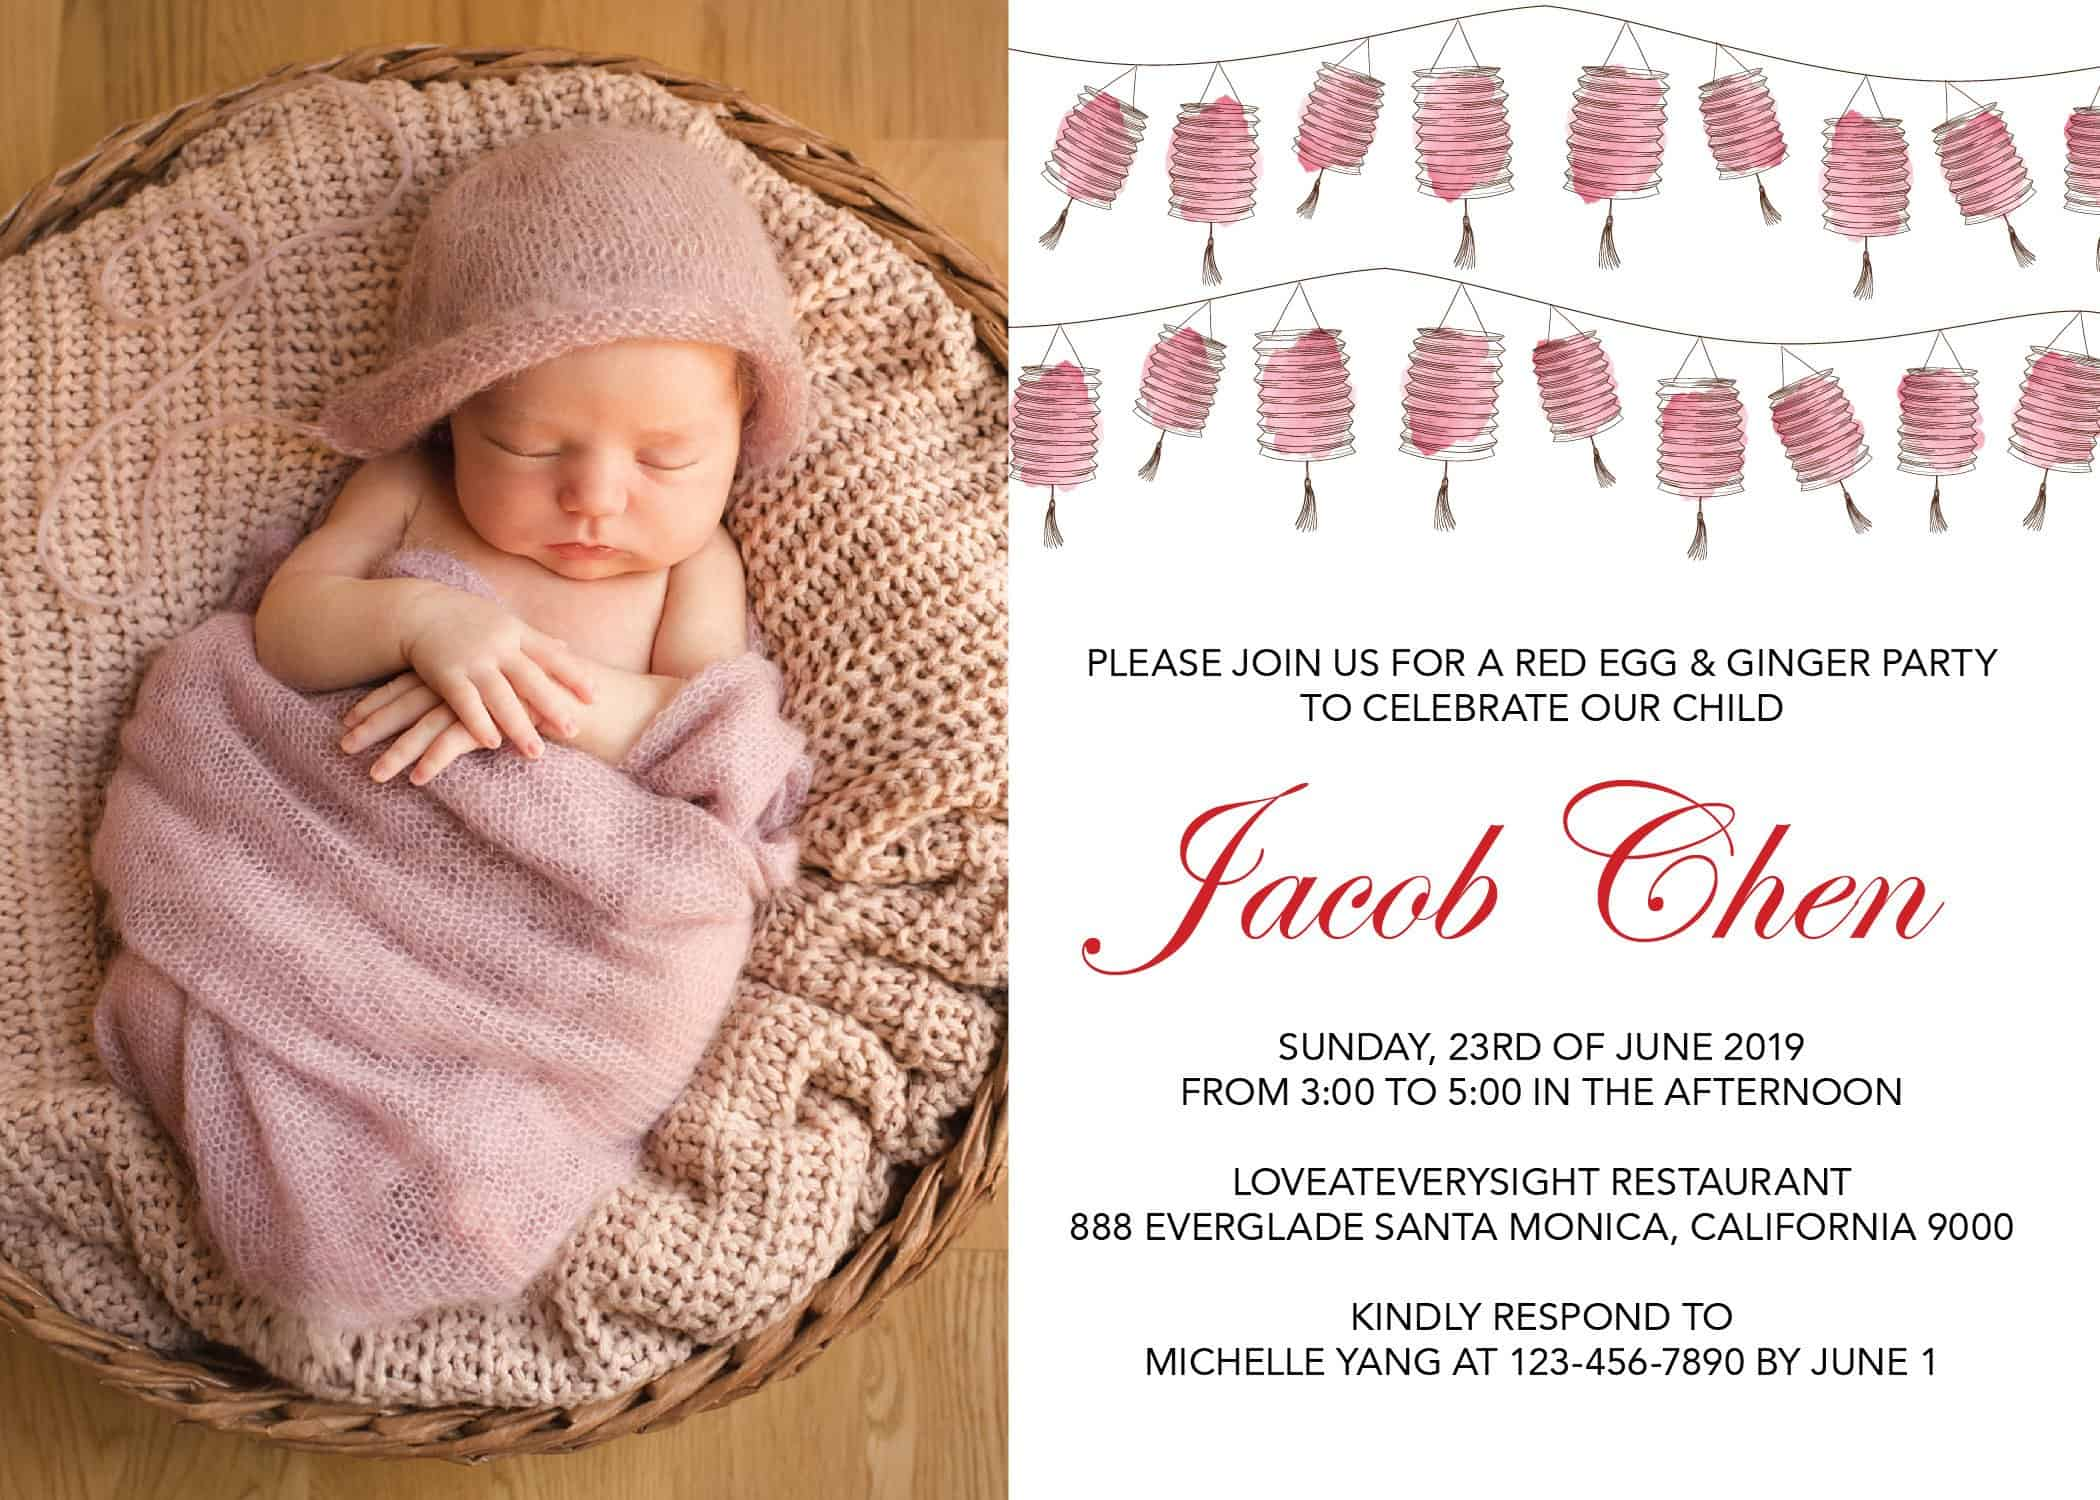 Red Egg and Ginger Party Invitation Cards With Hanging Lanterns, Add Your Own Photo